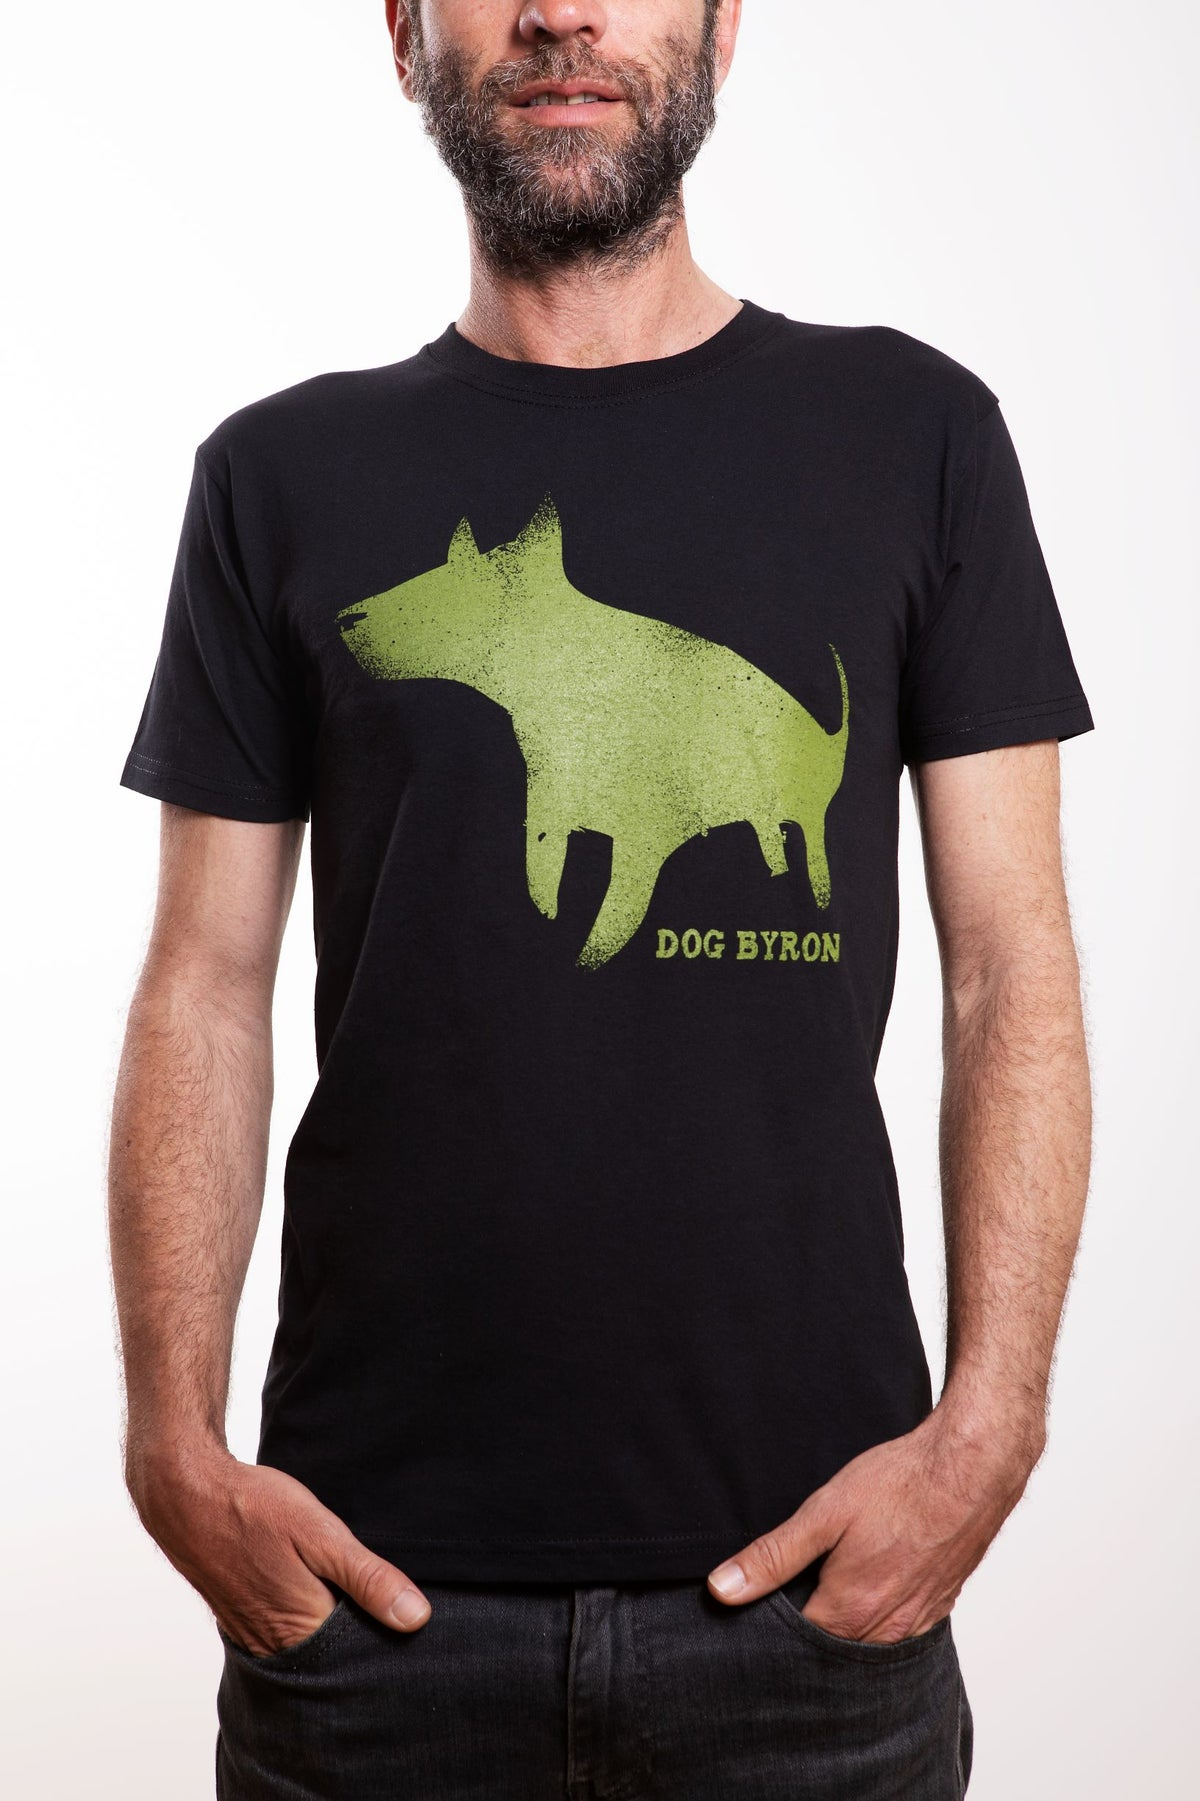 Image of Dog Byron - UNISEX - Light Green Logo